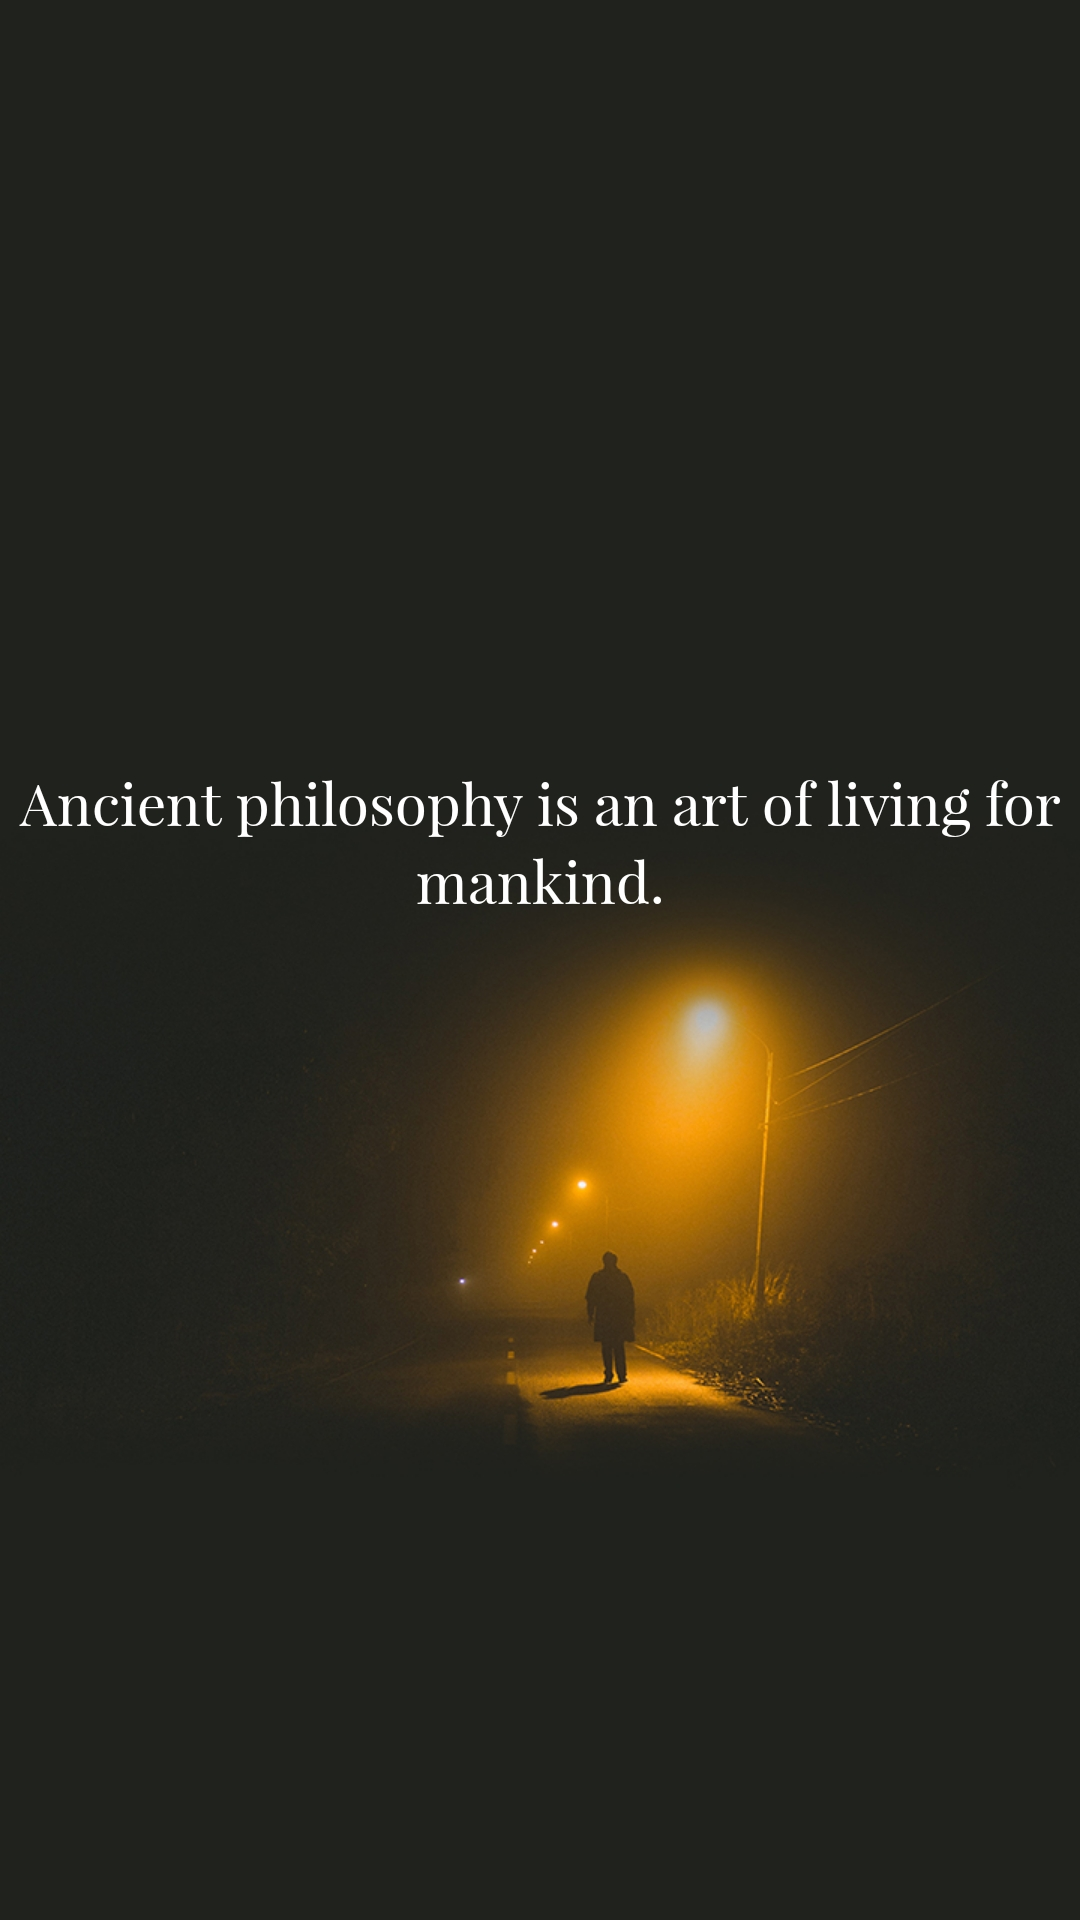 Ancient philosophy is an art of living for mankind.